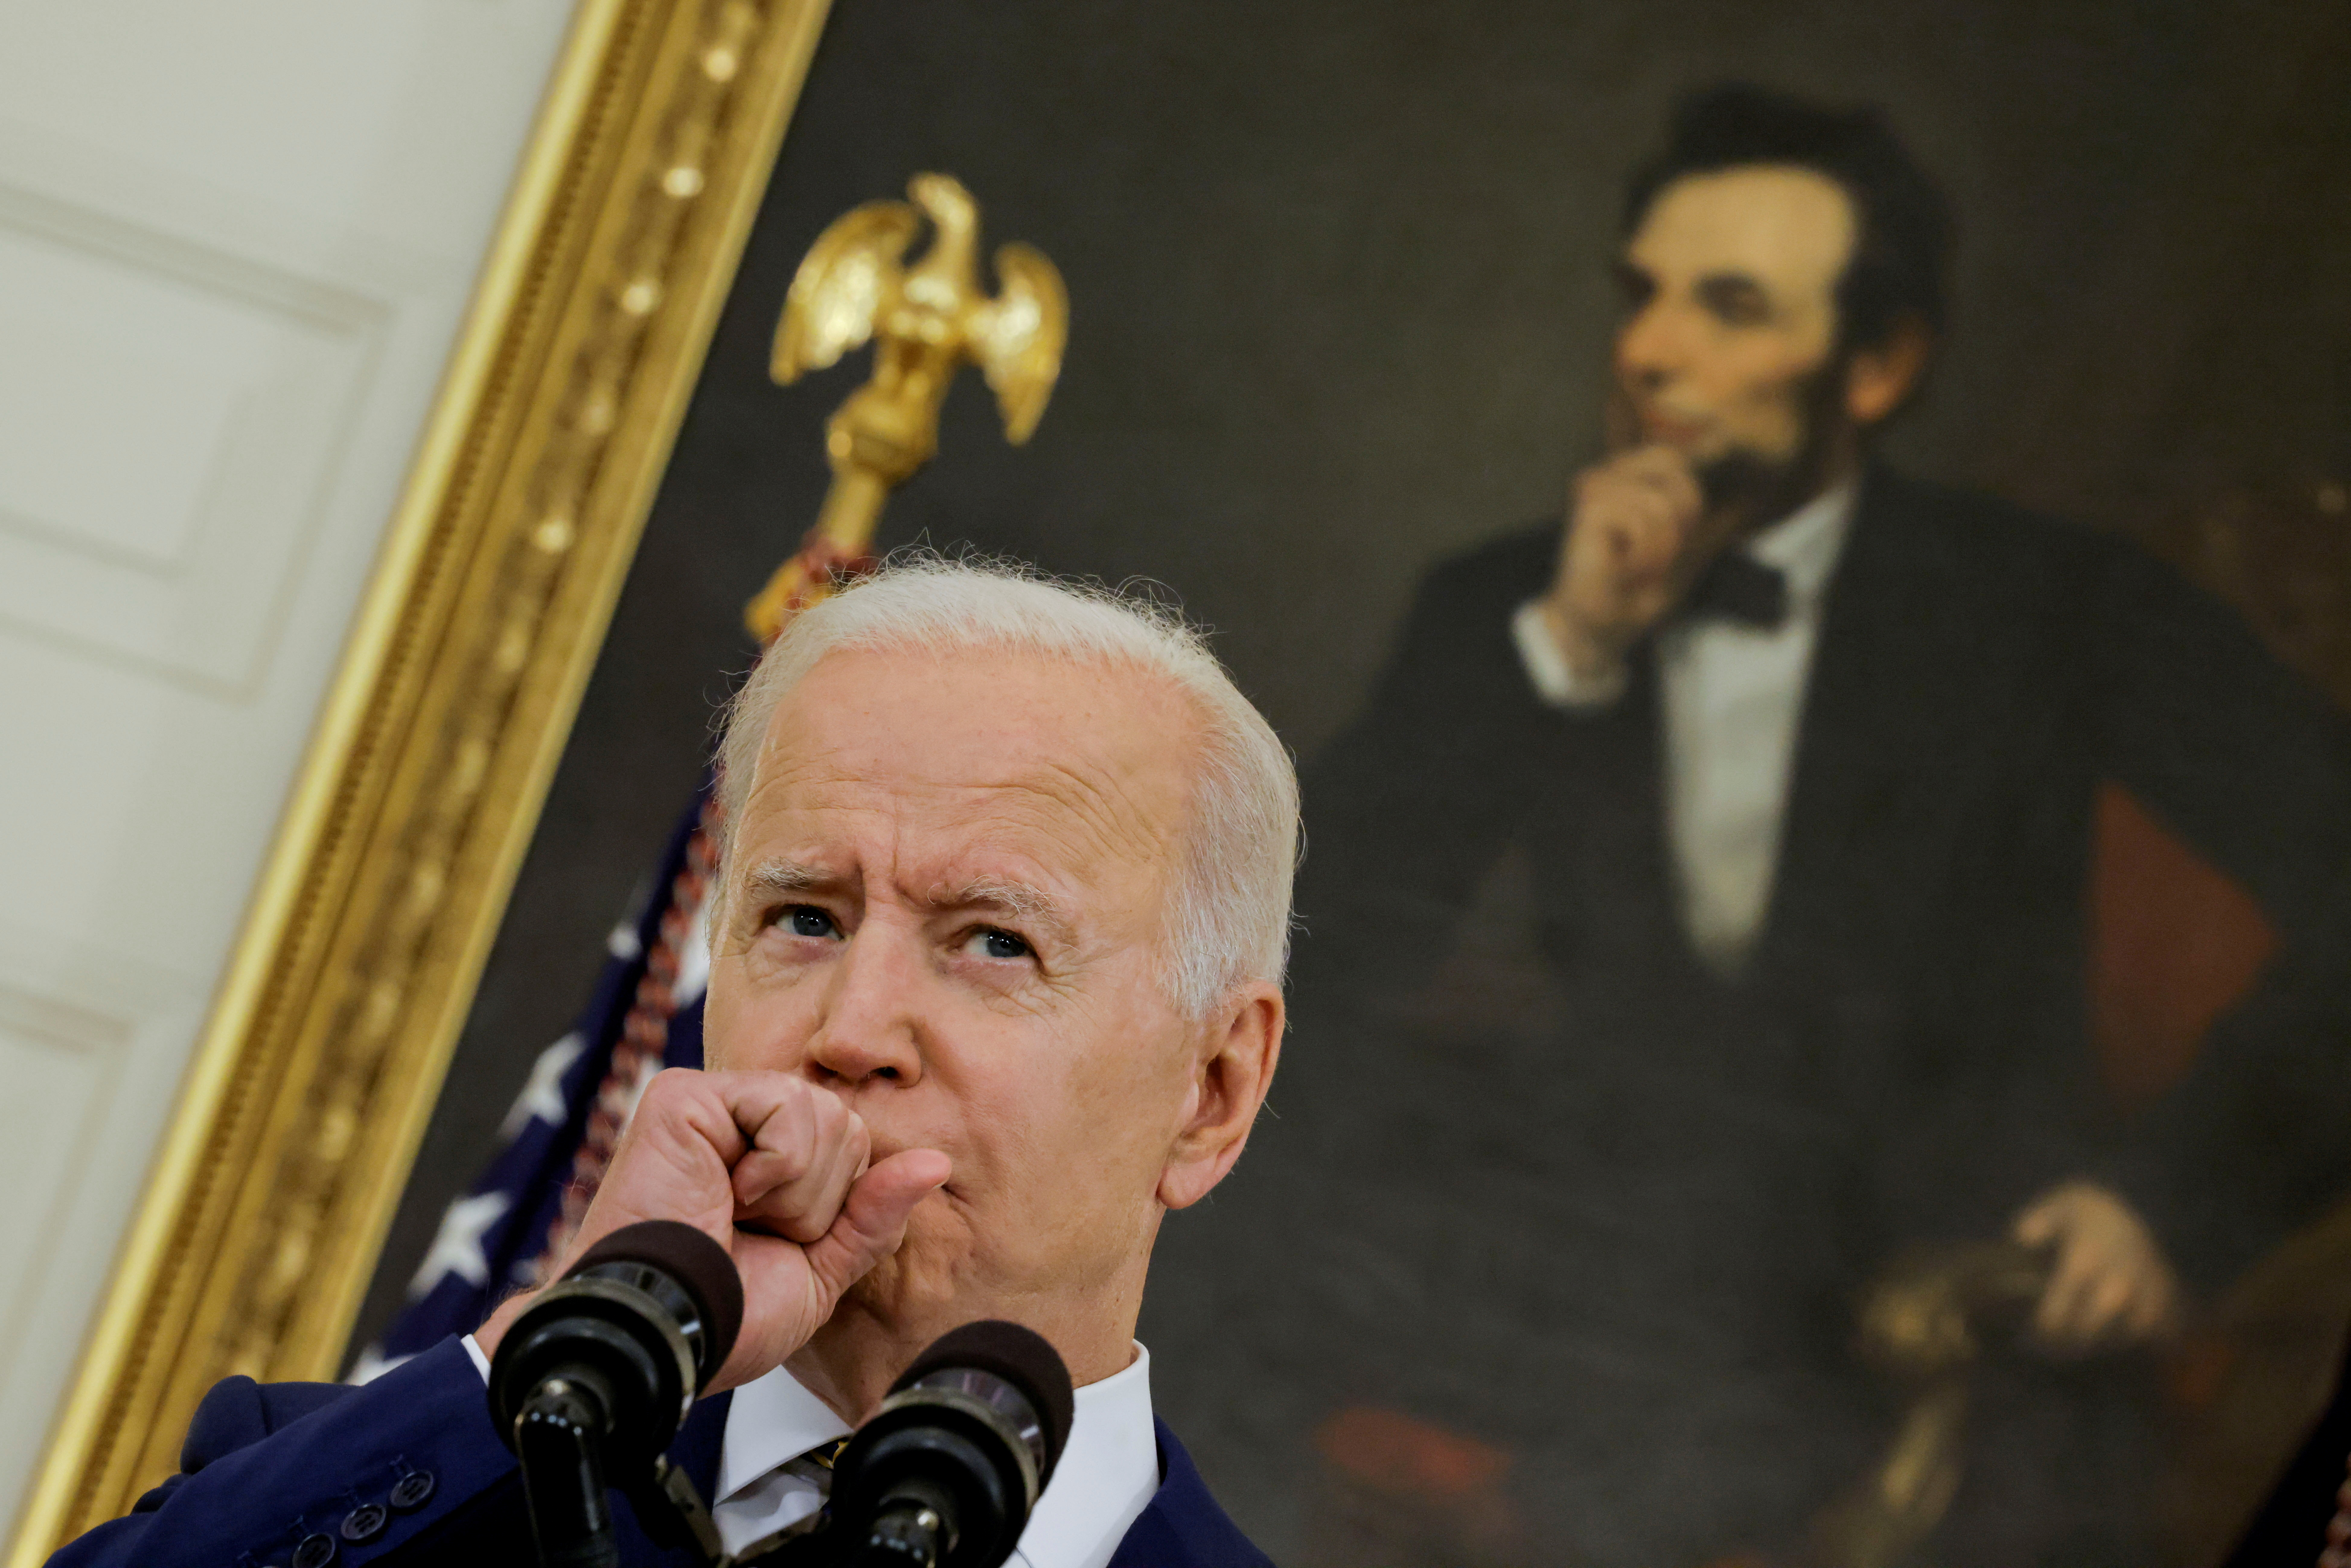 President Biden speaks about the administration's coronavirus disease response and the vaccination program during brief remarks in the State Dining Room of the White House in Washington, U.S., June 18, 2021. REUTERS/Carlos Barria/File Photo